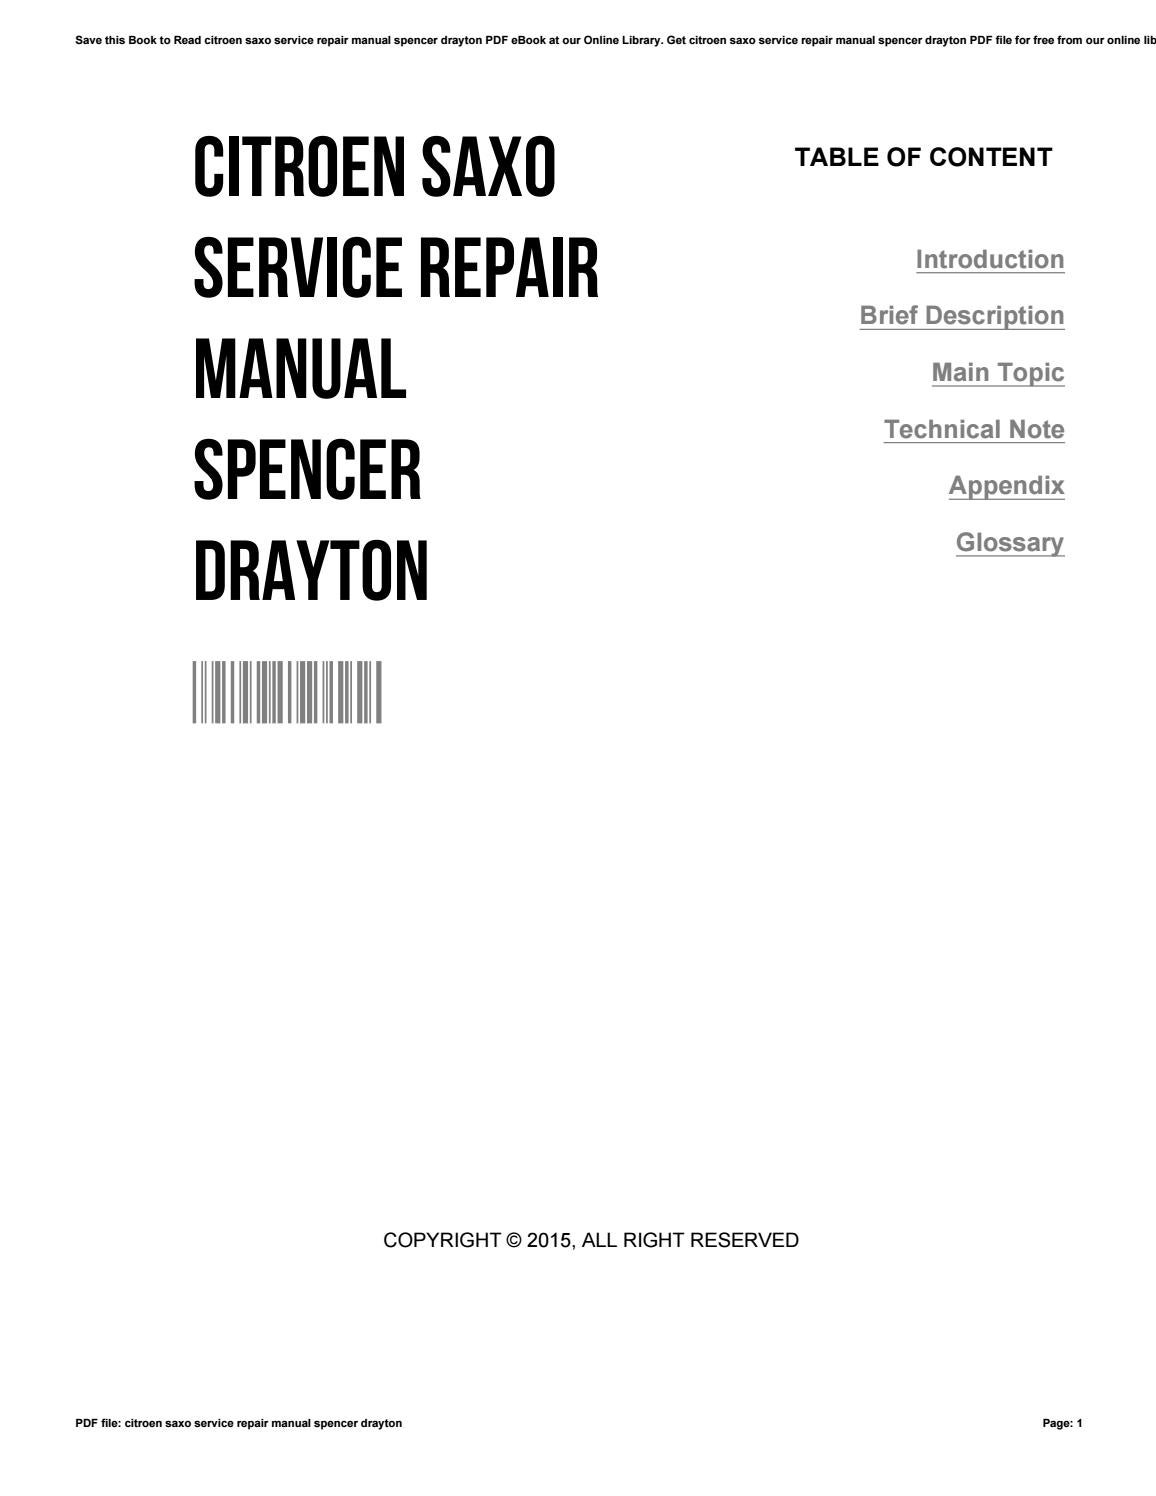 Citroen saxo service repair manual spencer drayton by